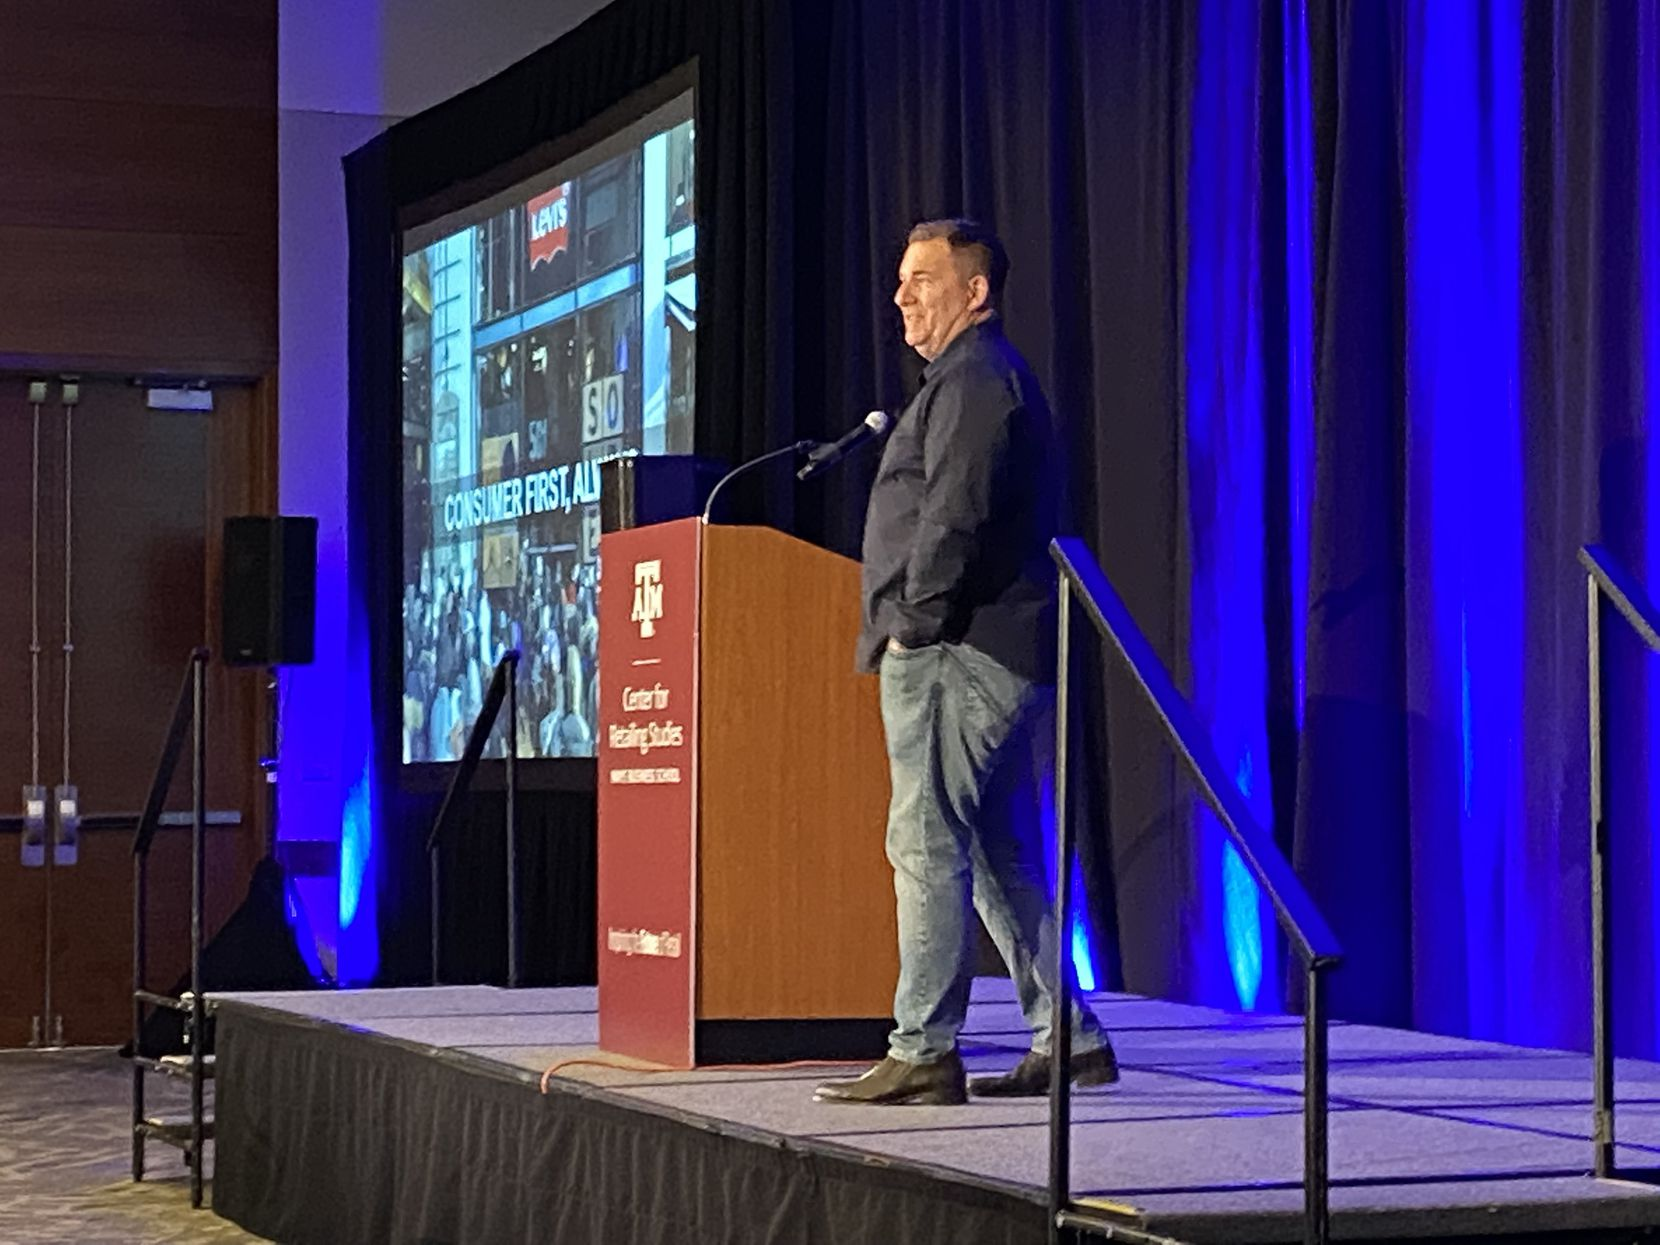 Seth Ellison, chief commercial officer, Levi Strauss & Co., spoke at the annual Texas A&M Retailing Summit in Dallas at the Westin Galleria.